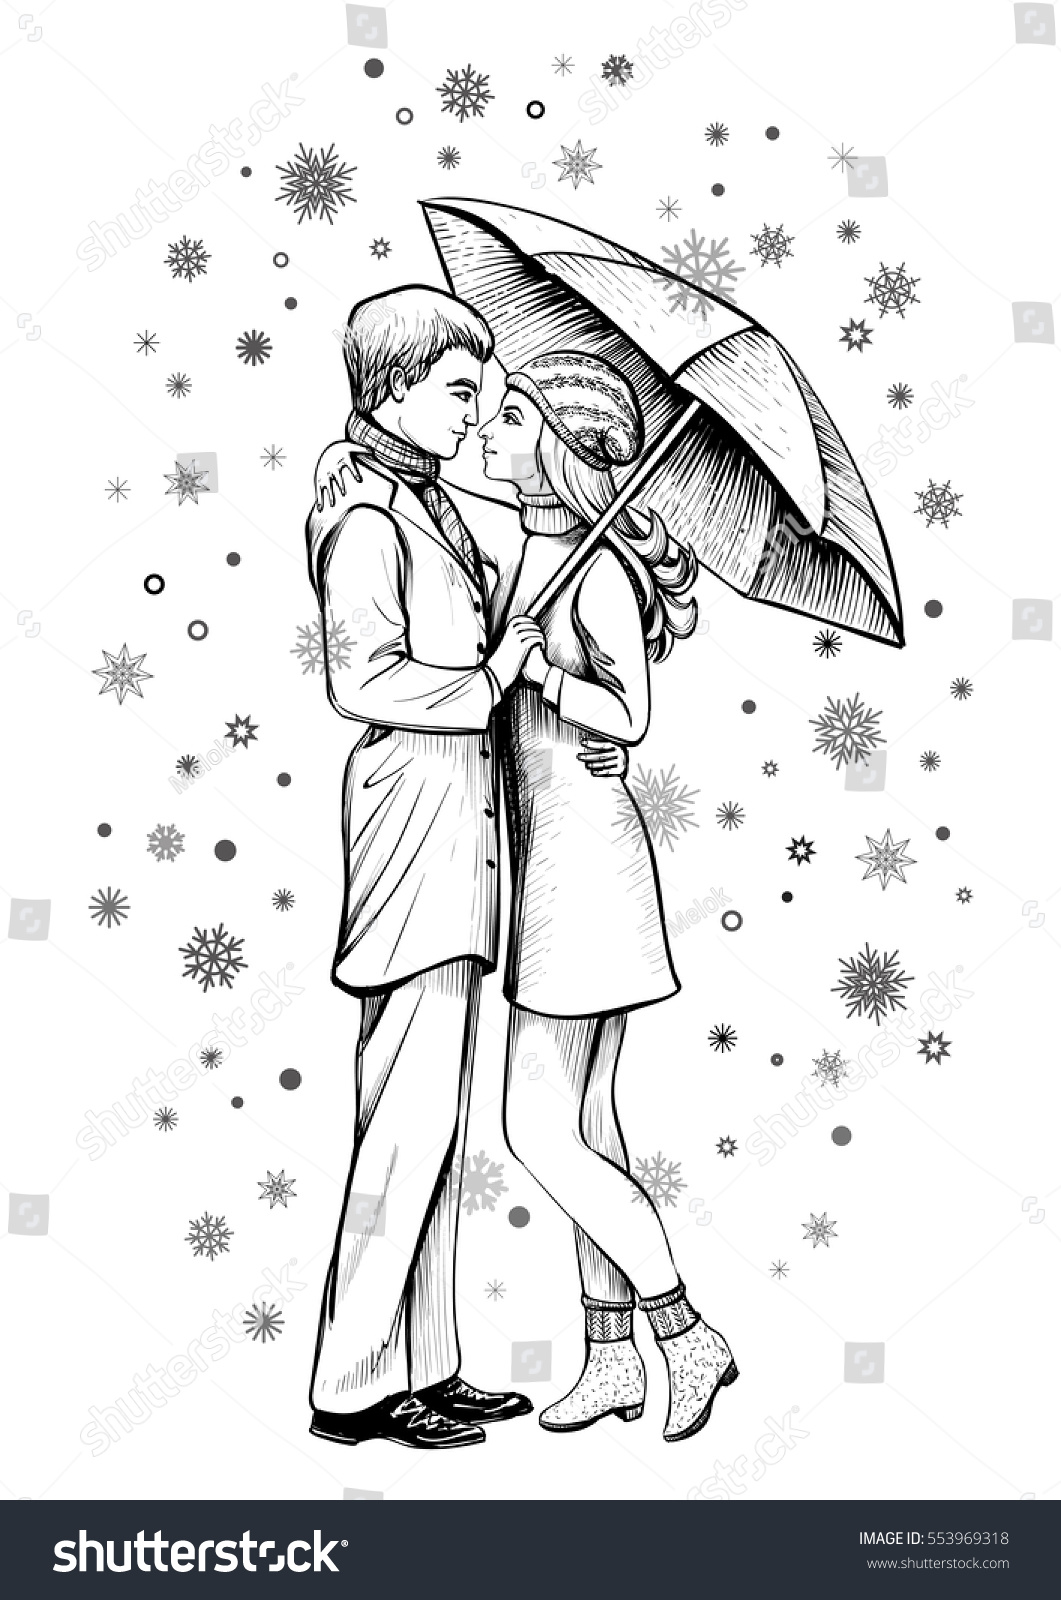 Couple in love under umbrella black and white hand drawn sketch romantic scene with hugging man and woman in snow winter line art illustration